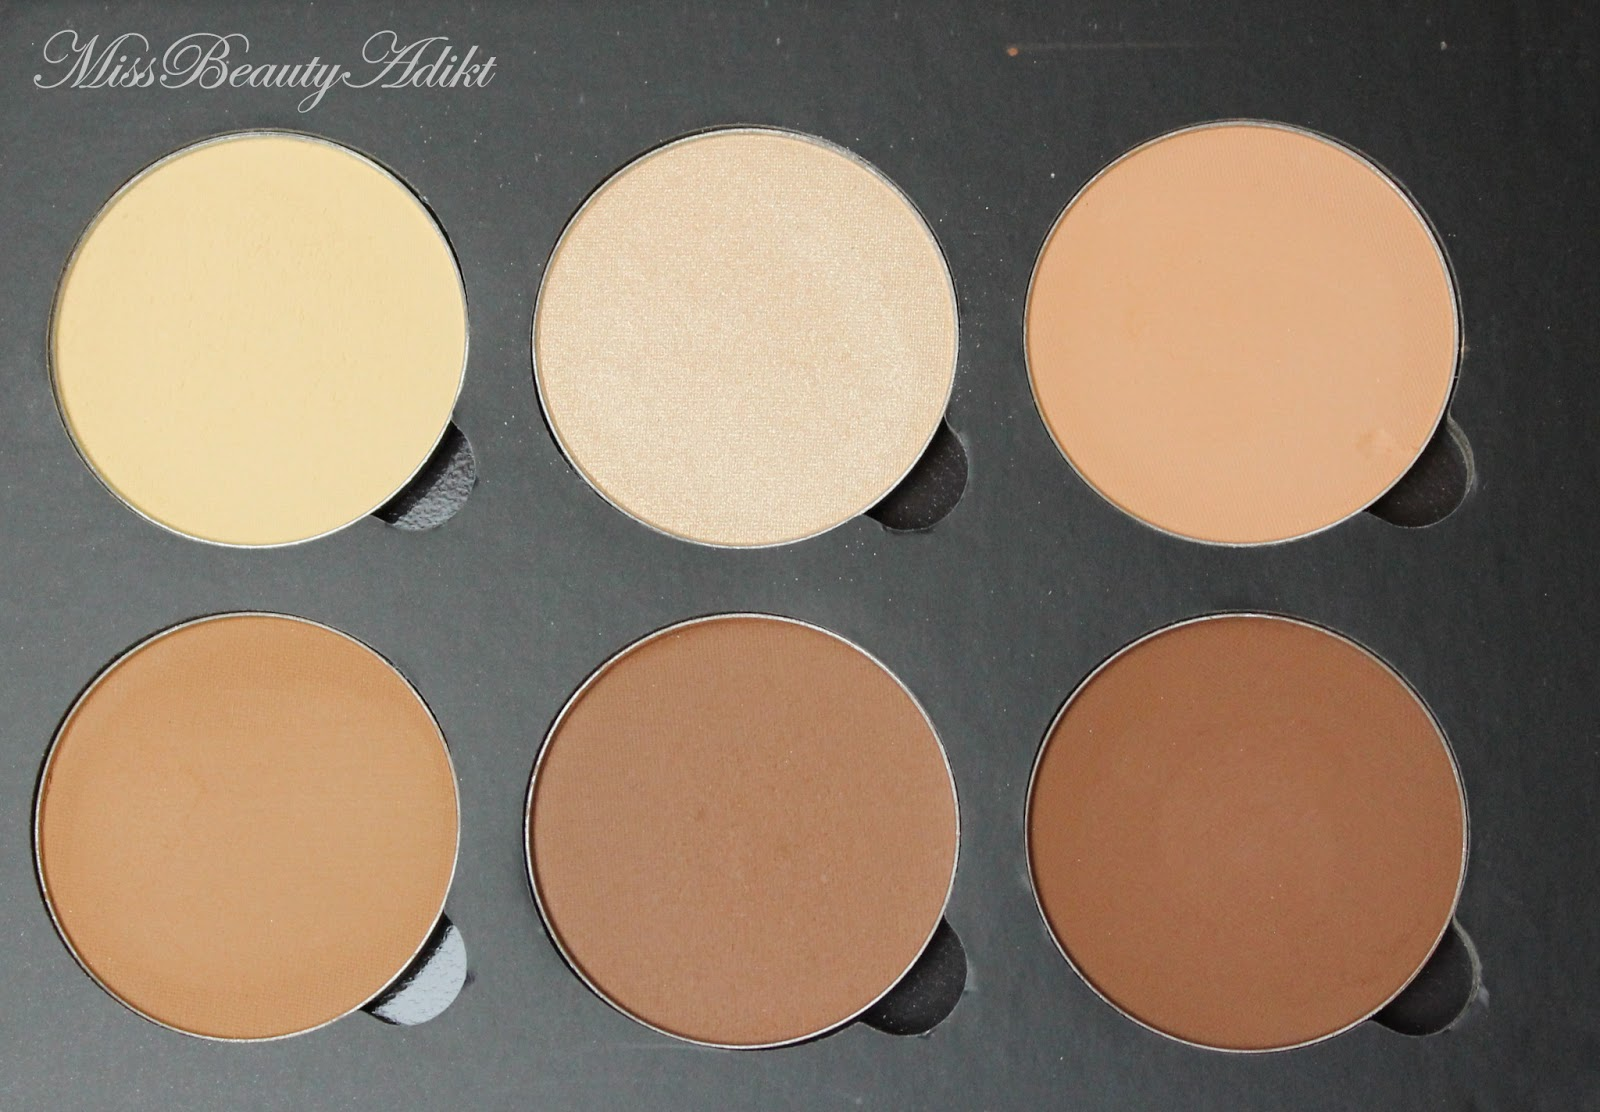 Wasn't Going To Use Some Of The Shades In The Prefilled Palette The  Palettees Free When You Order Six Of The Refills And You Still Only Pay  $40